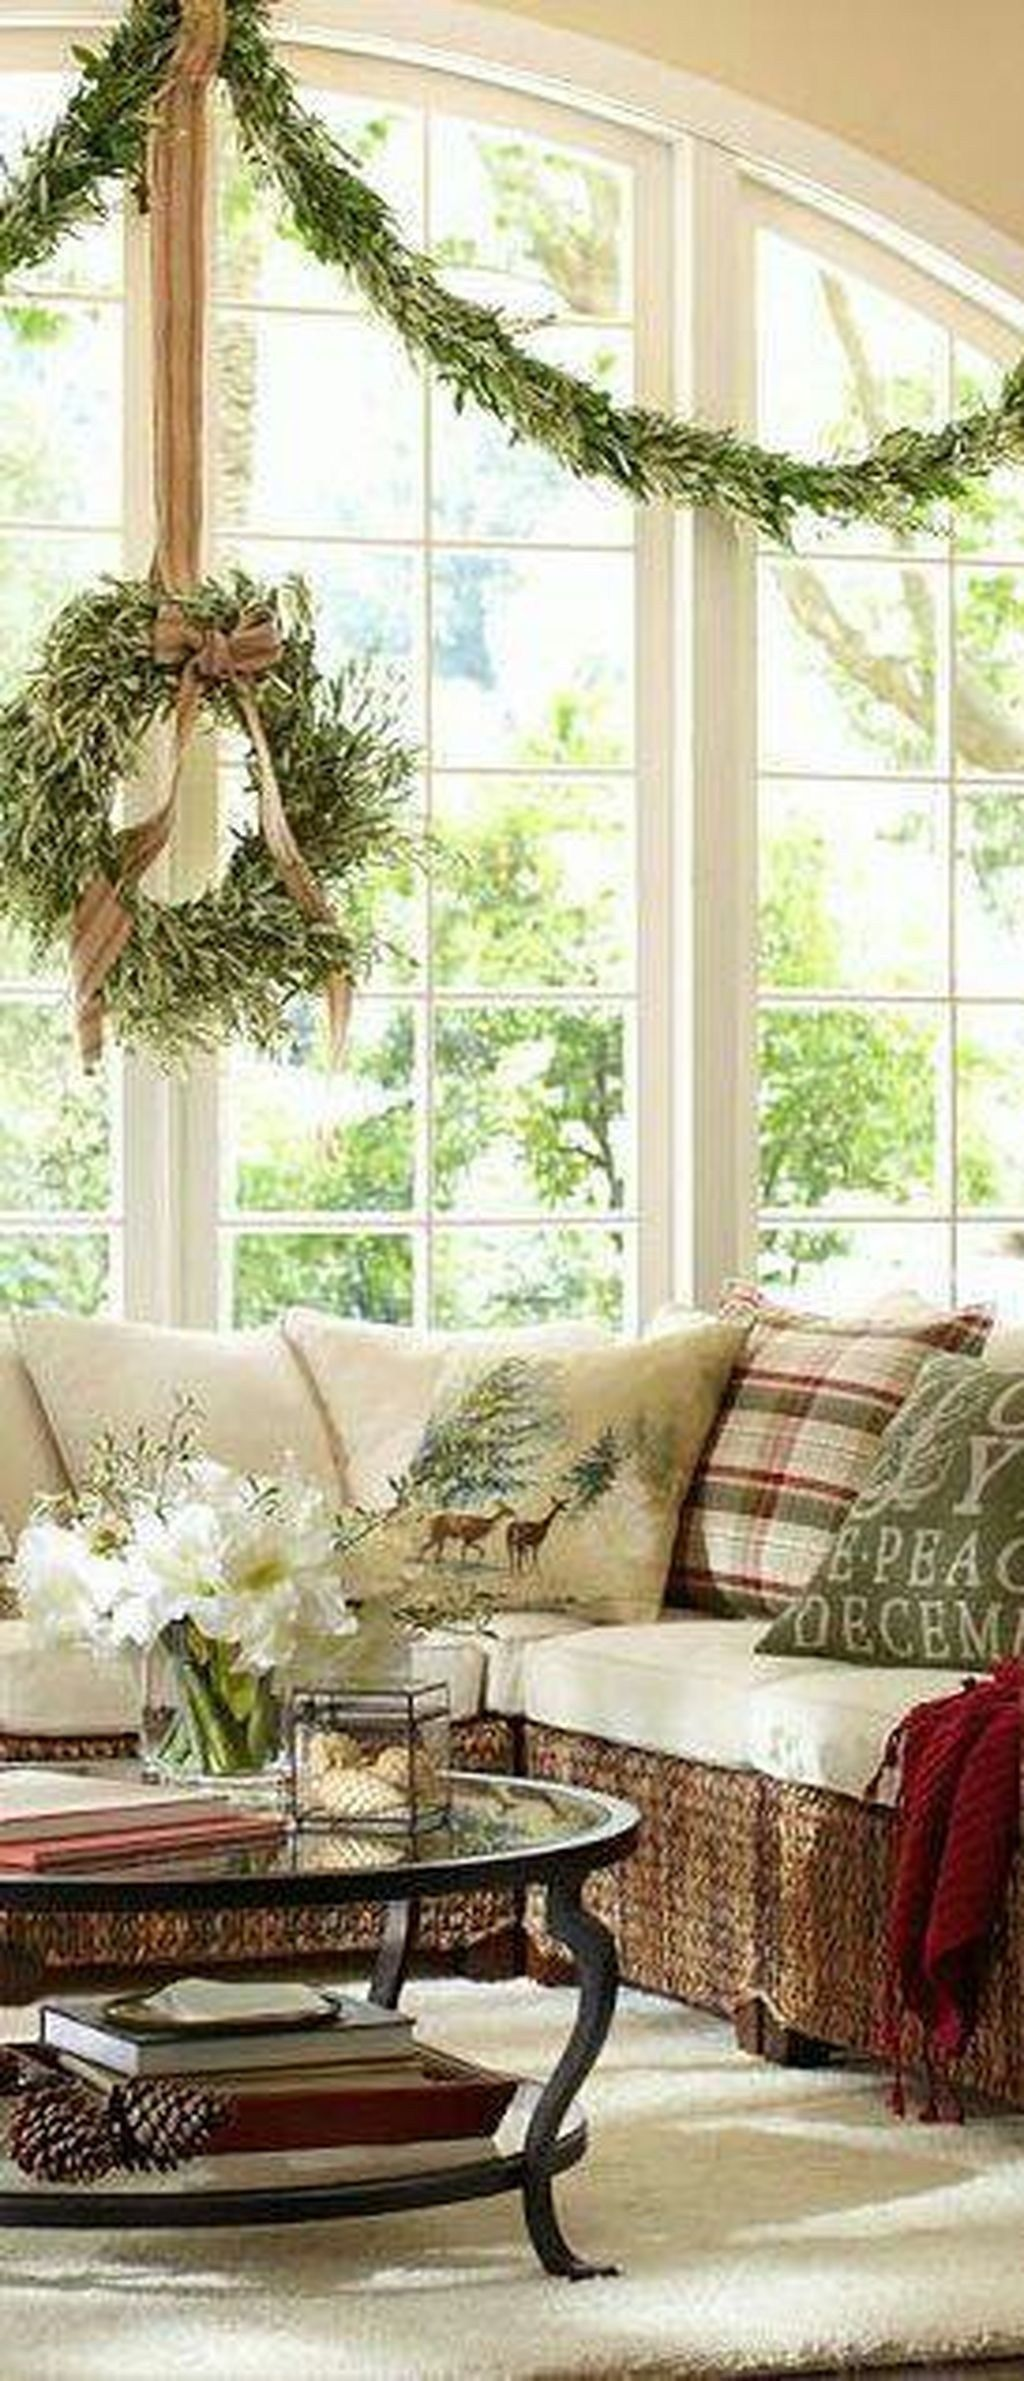 Window decor with wreath   cozy chistmas house decorationhomedecorish  christmas house